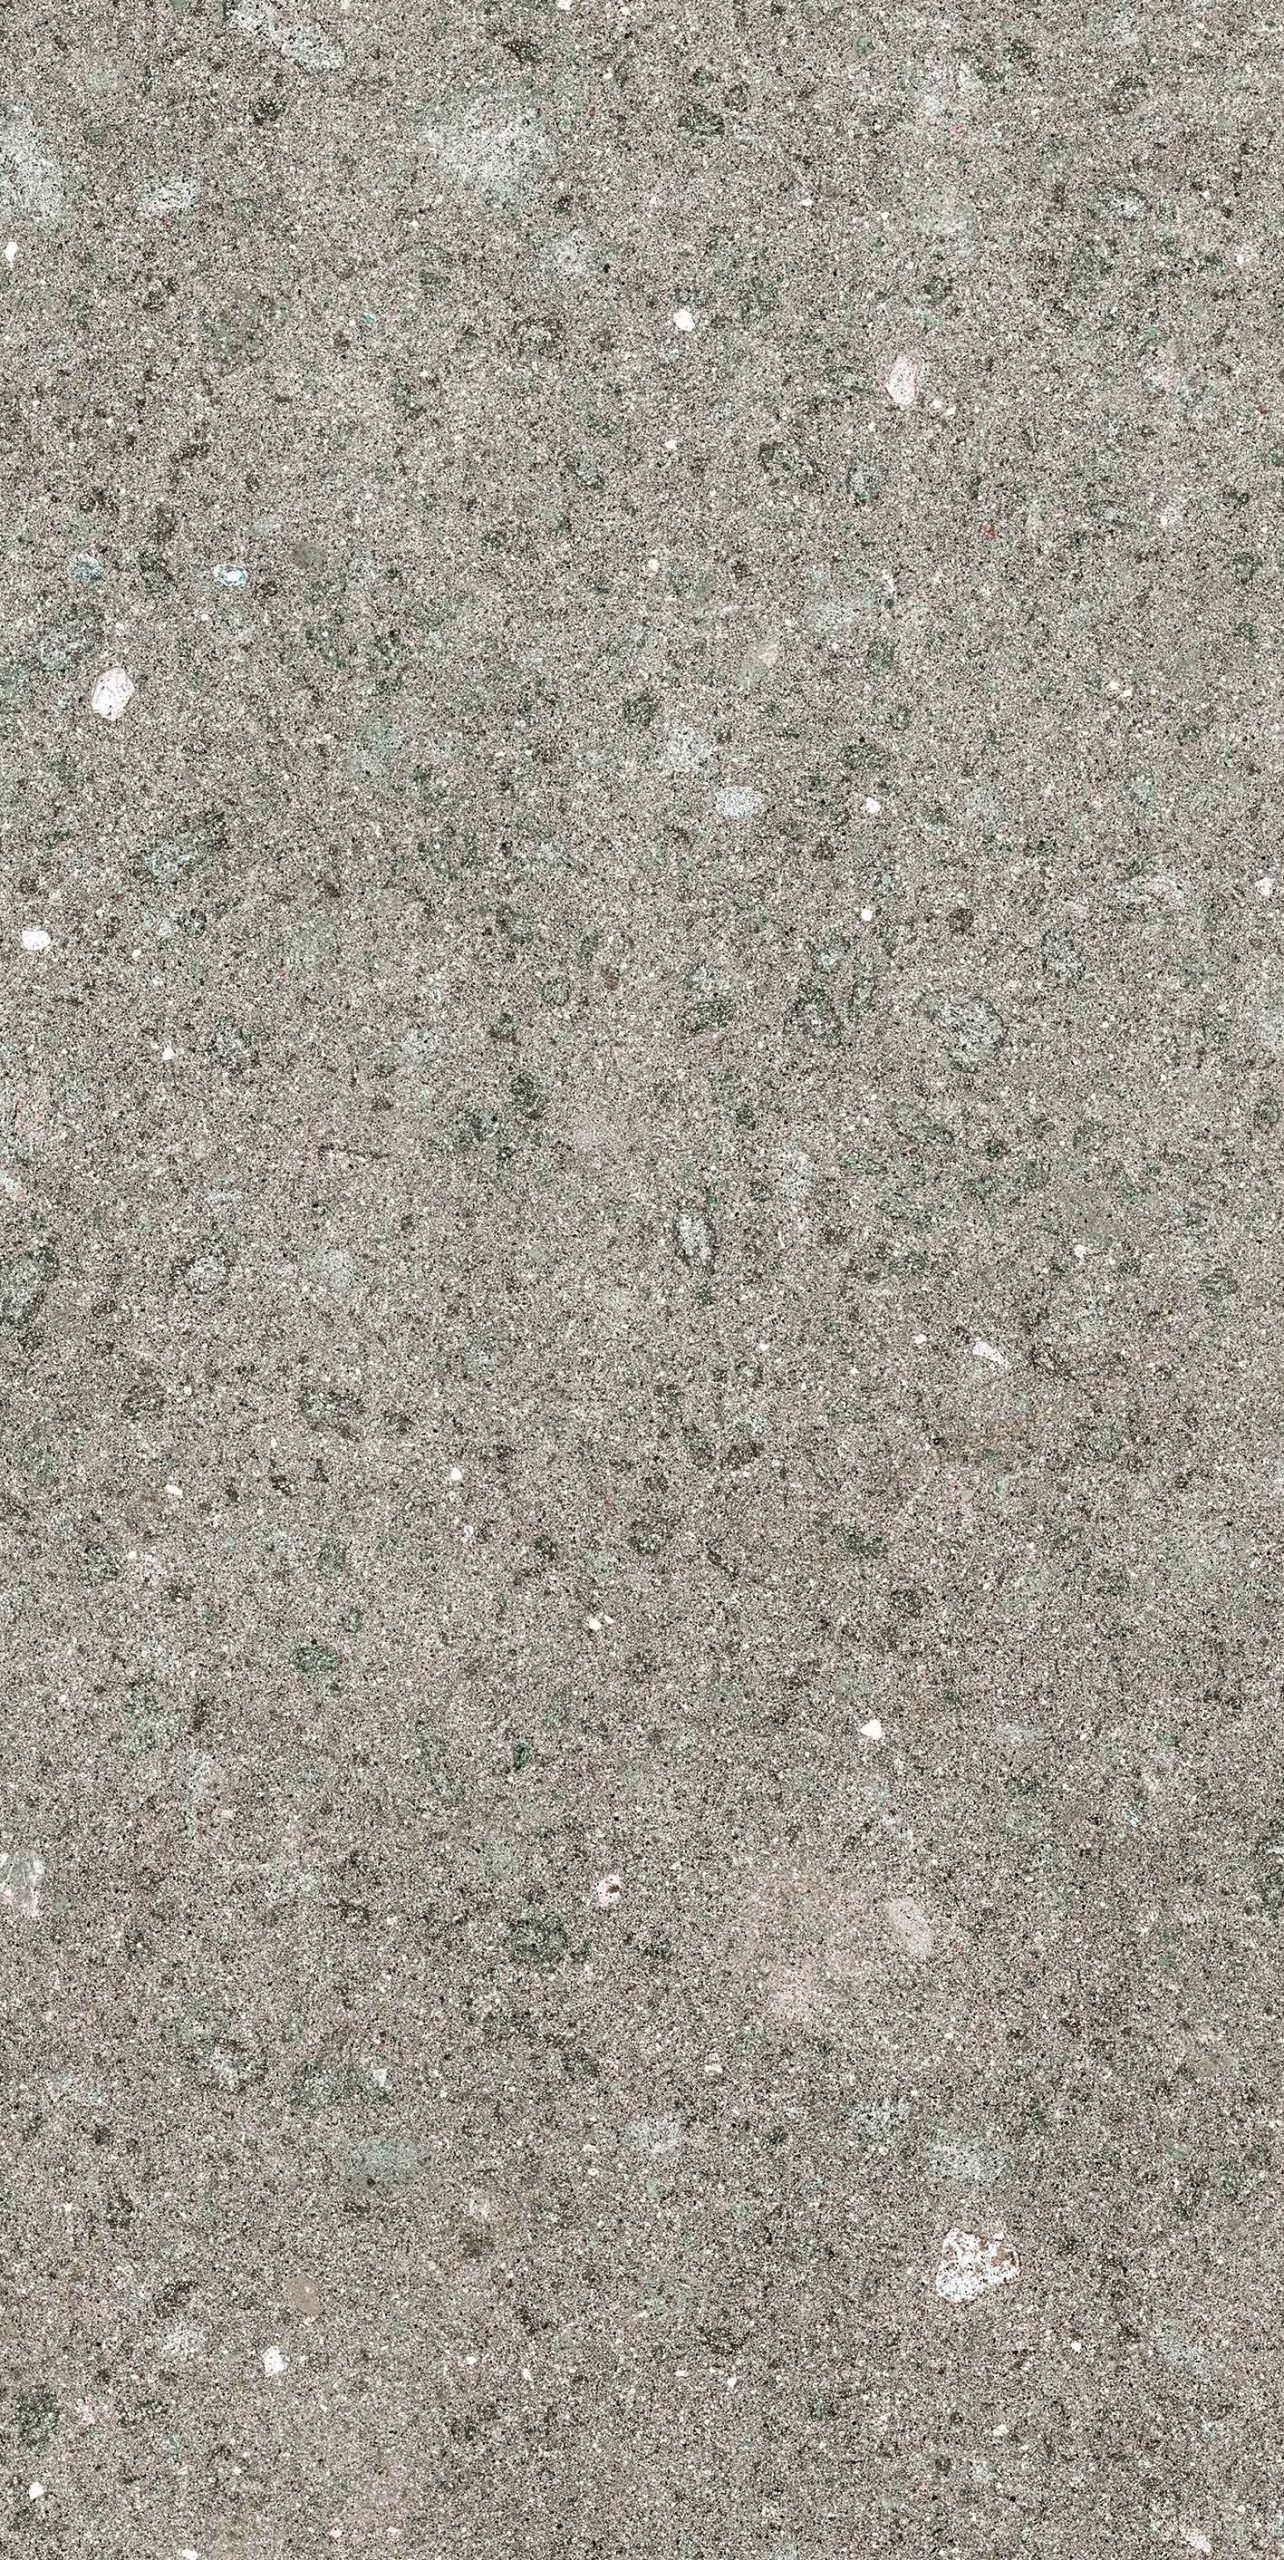 Stontech 4.0 Stone 04 Slate-hammered 10mm 60 x 120